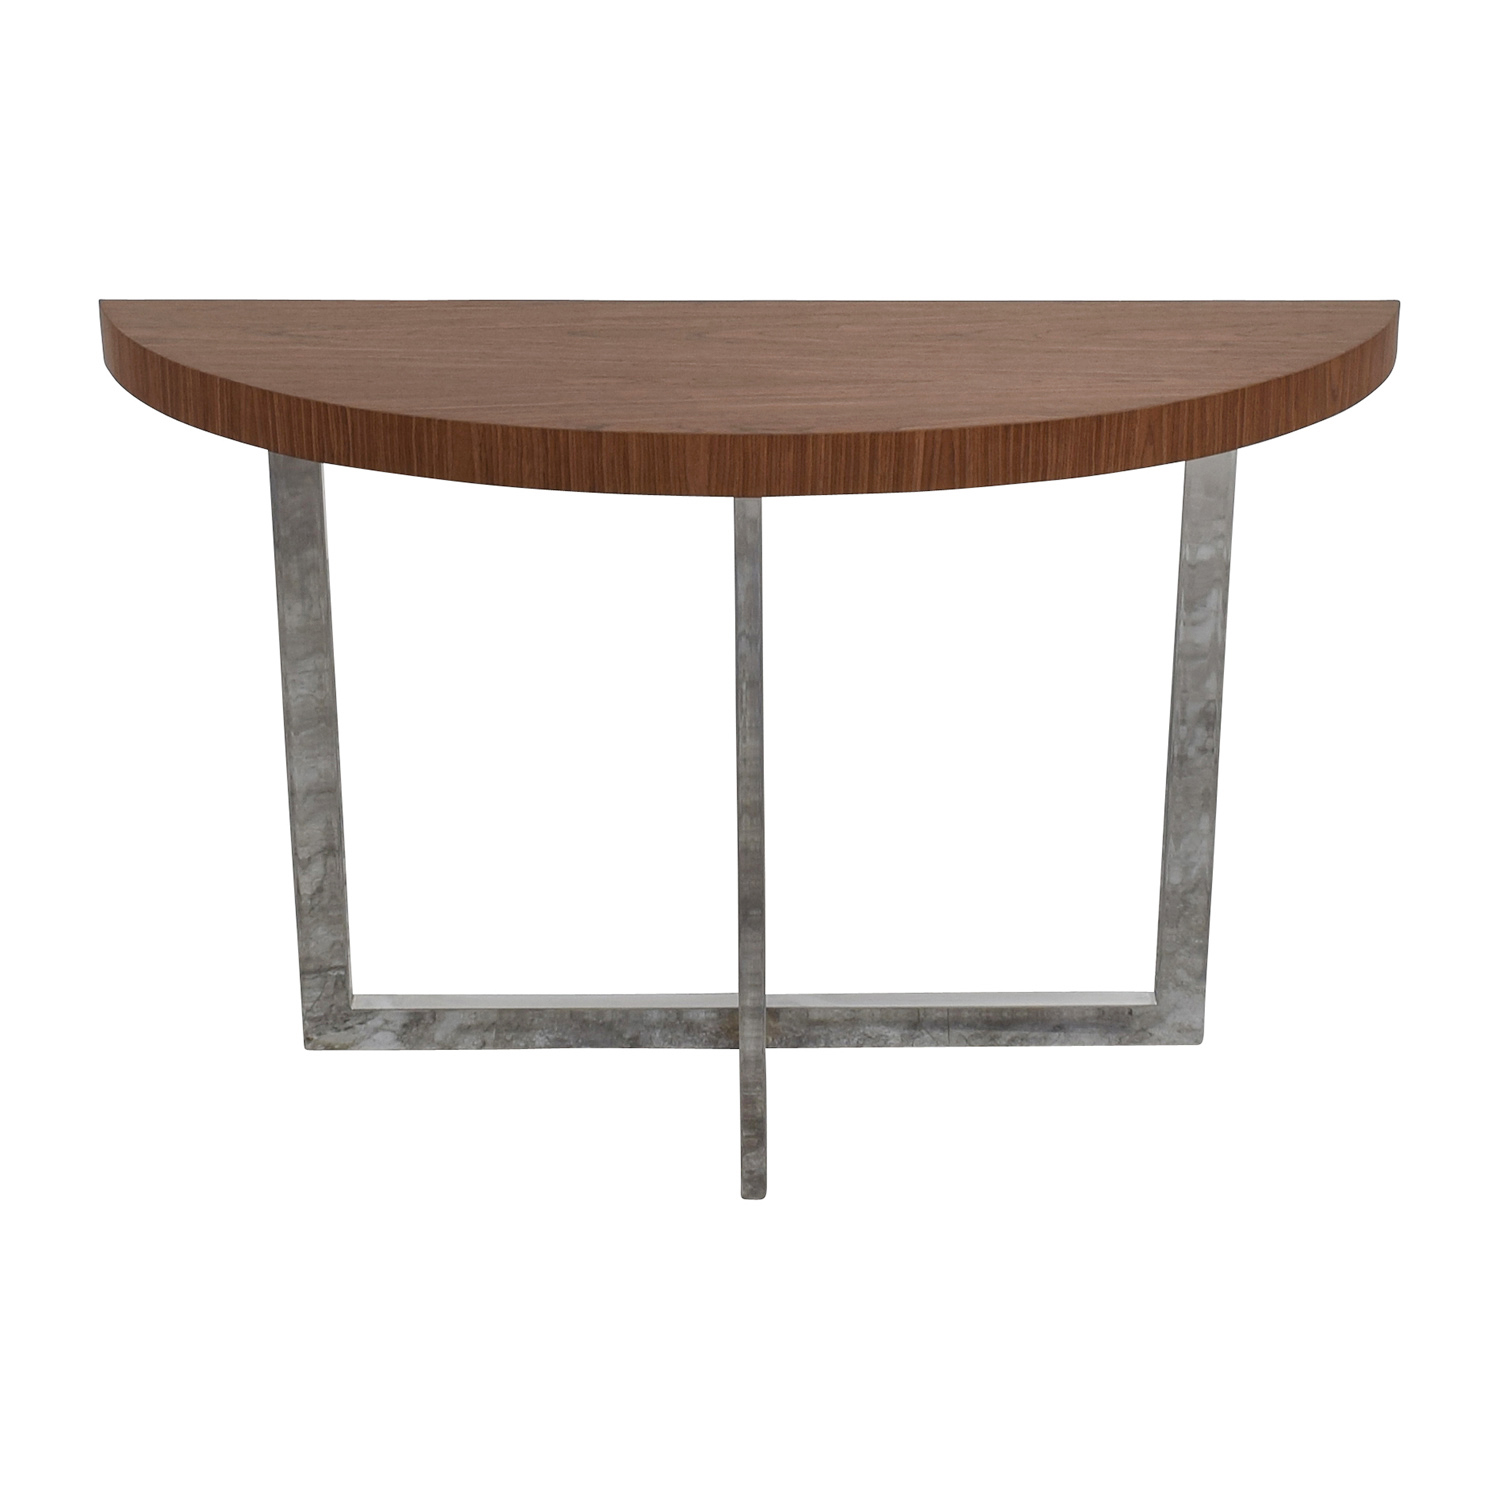 InMod Inmod Oliver Console Table on sale